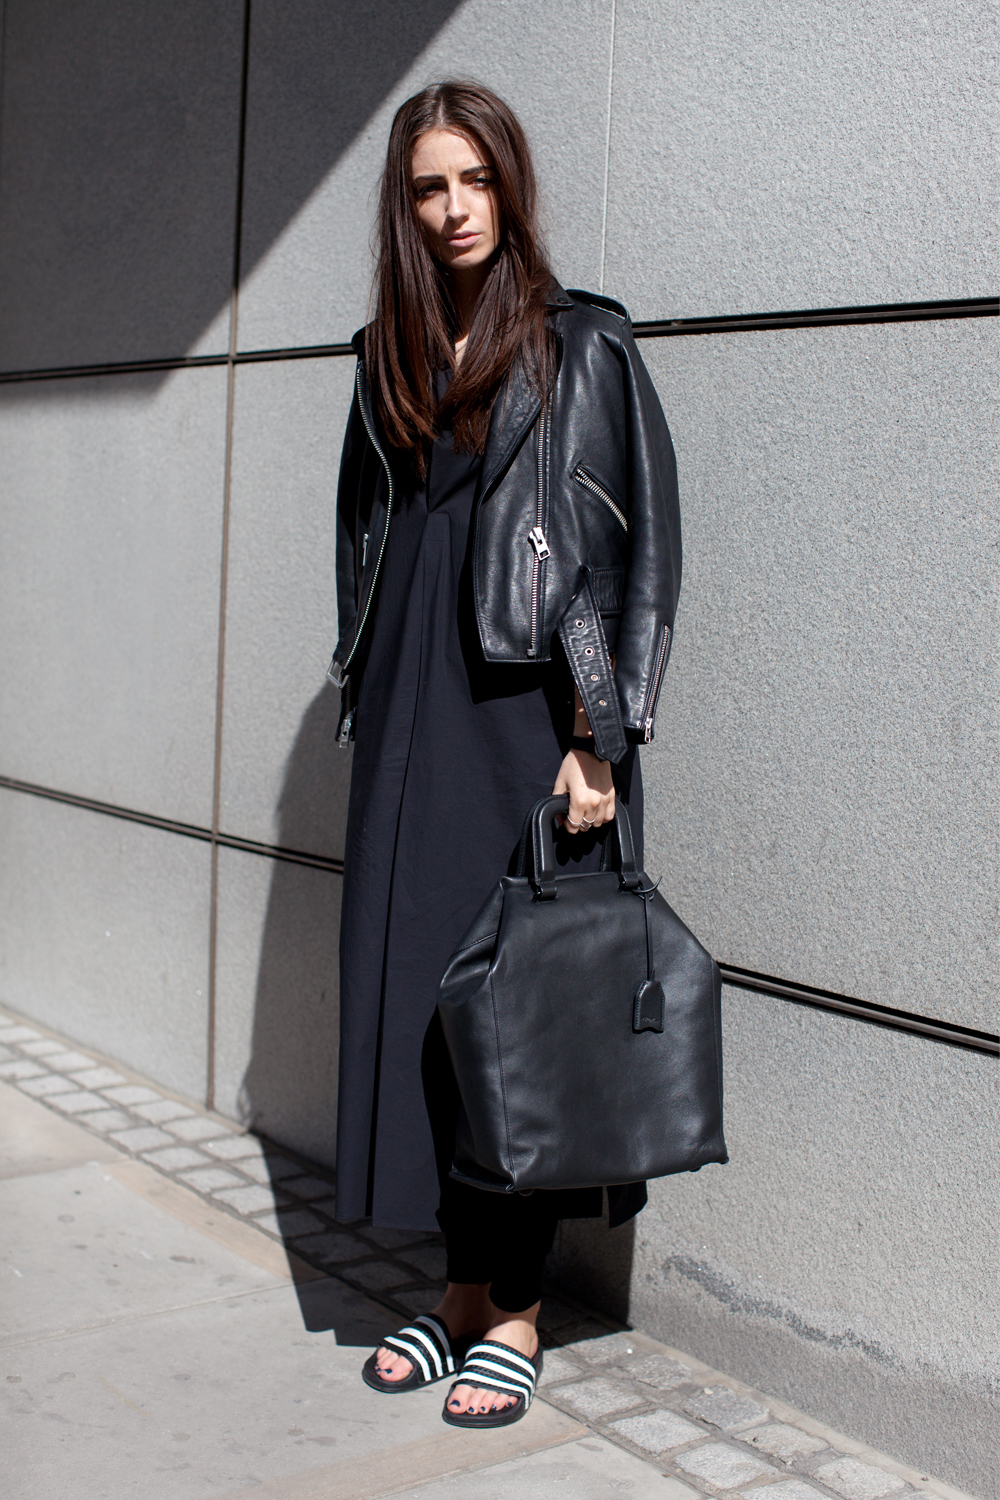 Black dress with adidas shoes - Studio Nicholson Tunic Dress Allsaints Leather Jacket Other Stories Joggers 3 1 Phillip